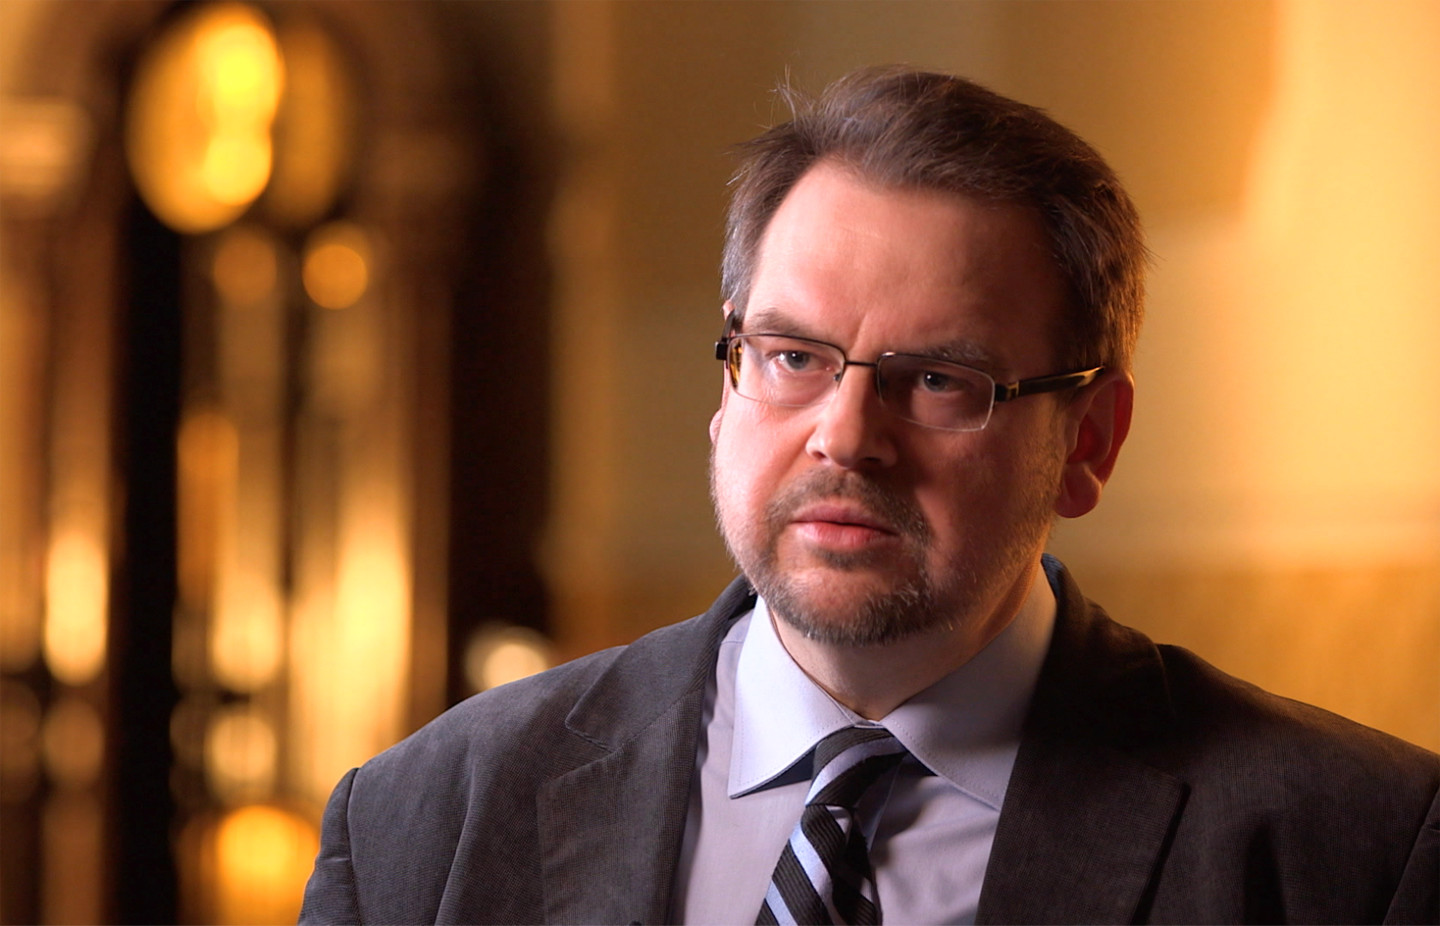 Dr. Henryk Glebocki, interviewee on John Paul 2: Liberating a Continent, the fall of Communism.